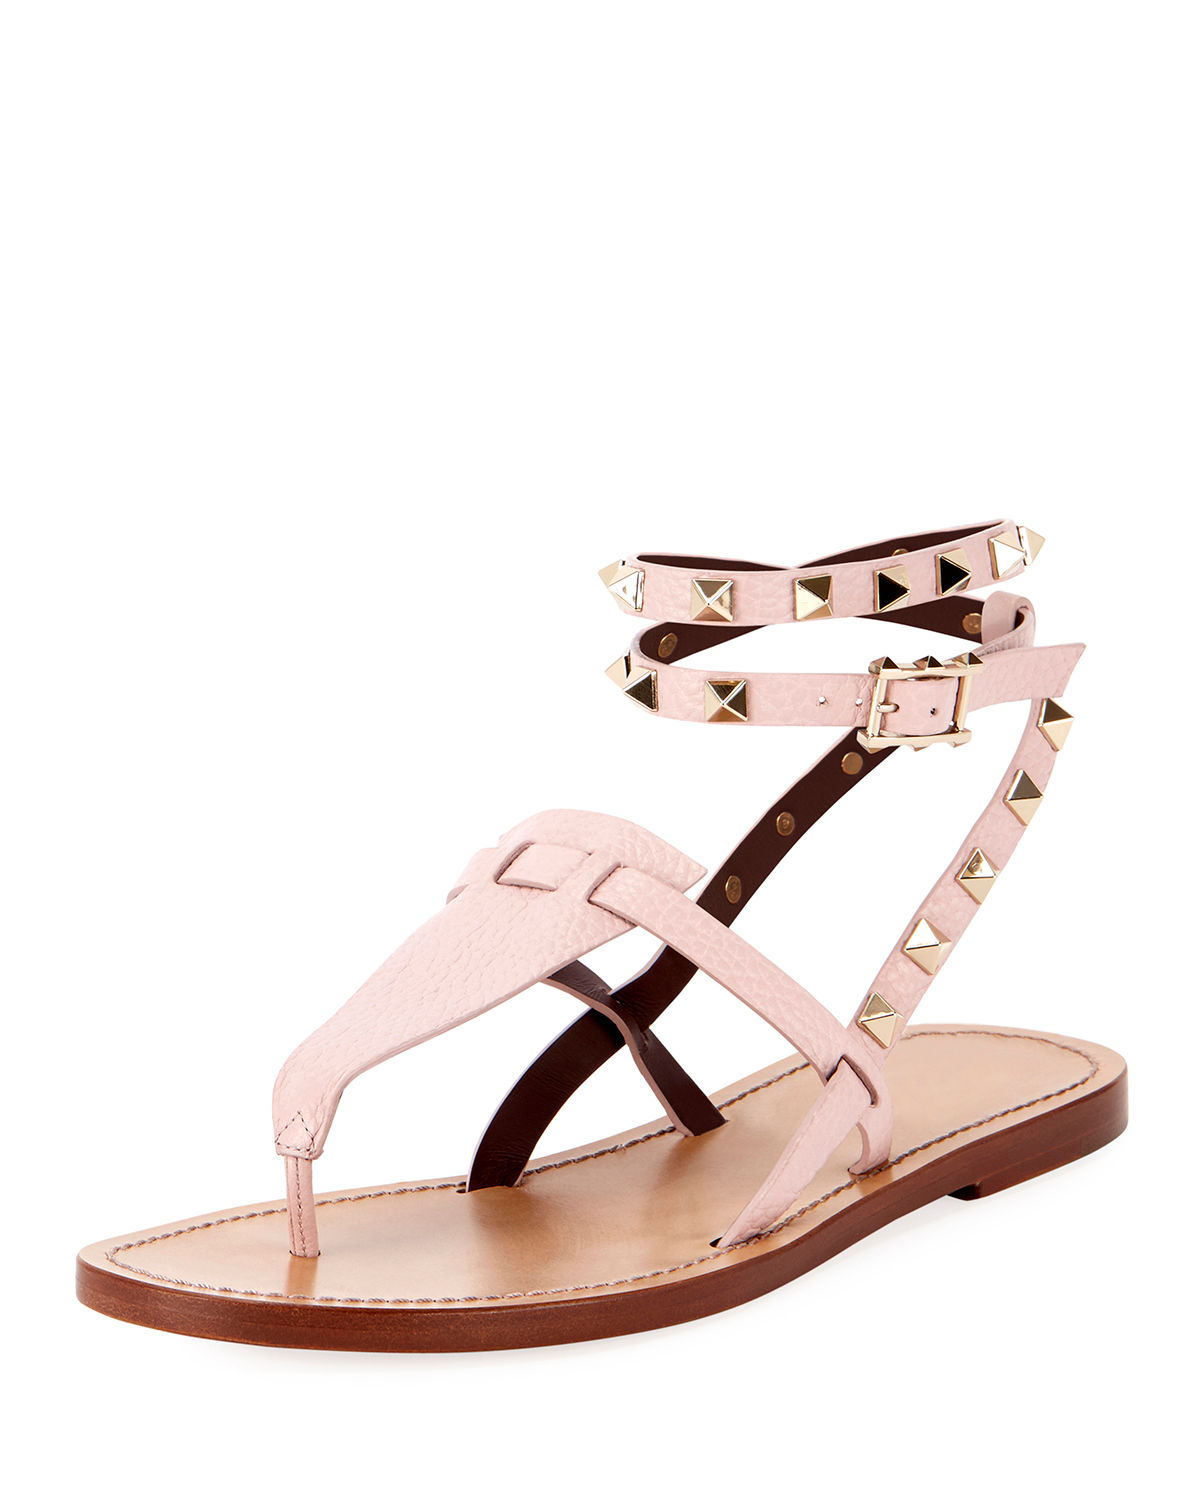 088a102a2895 Valentino Flat Rockstud Ankle-Wrap Gladiator Sandals In Pink